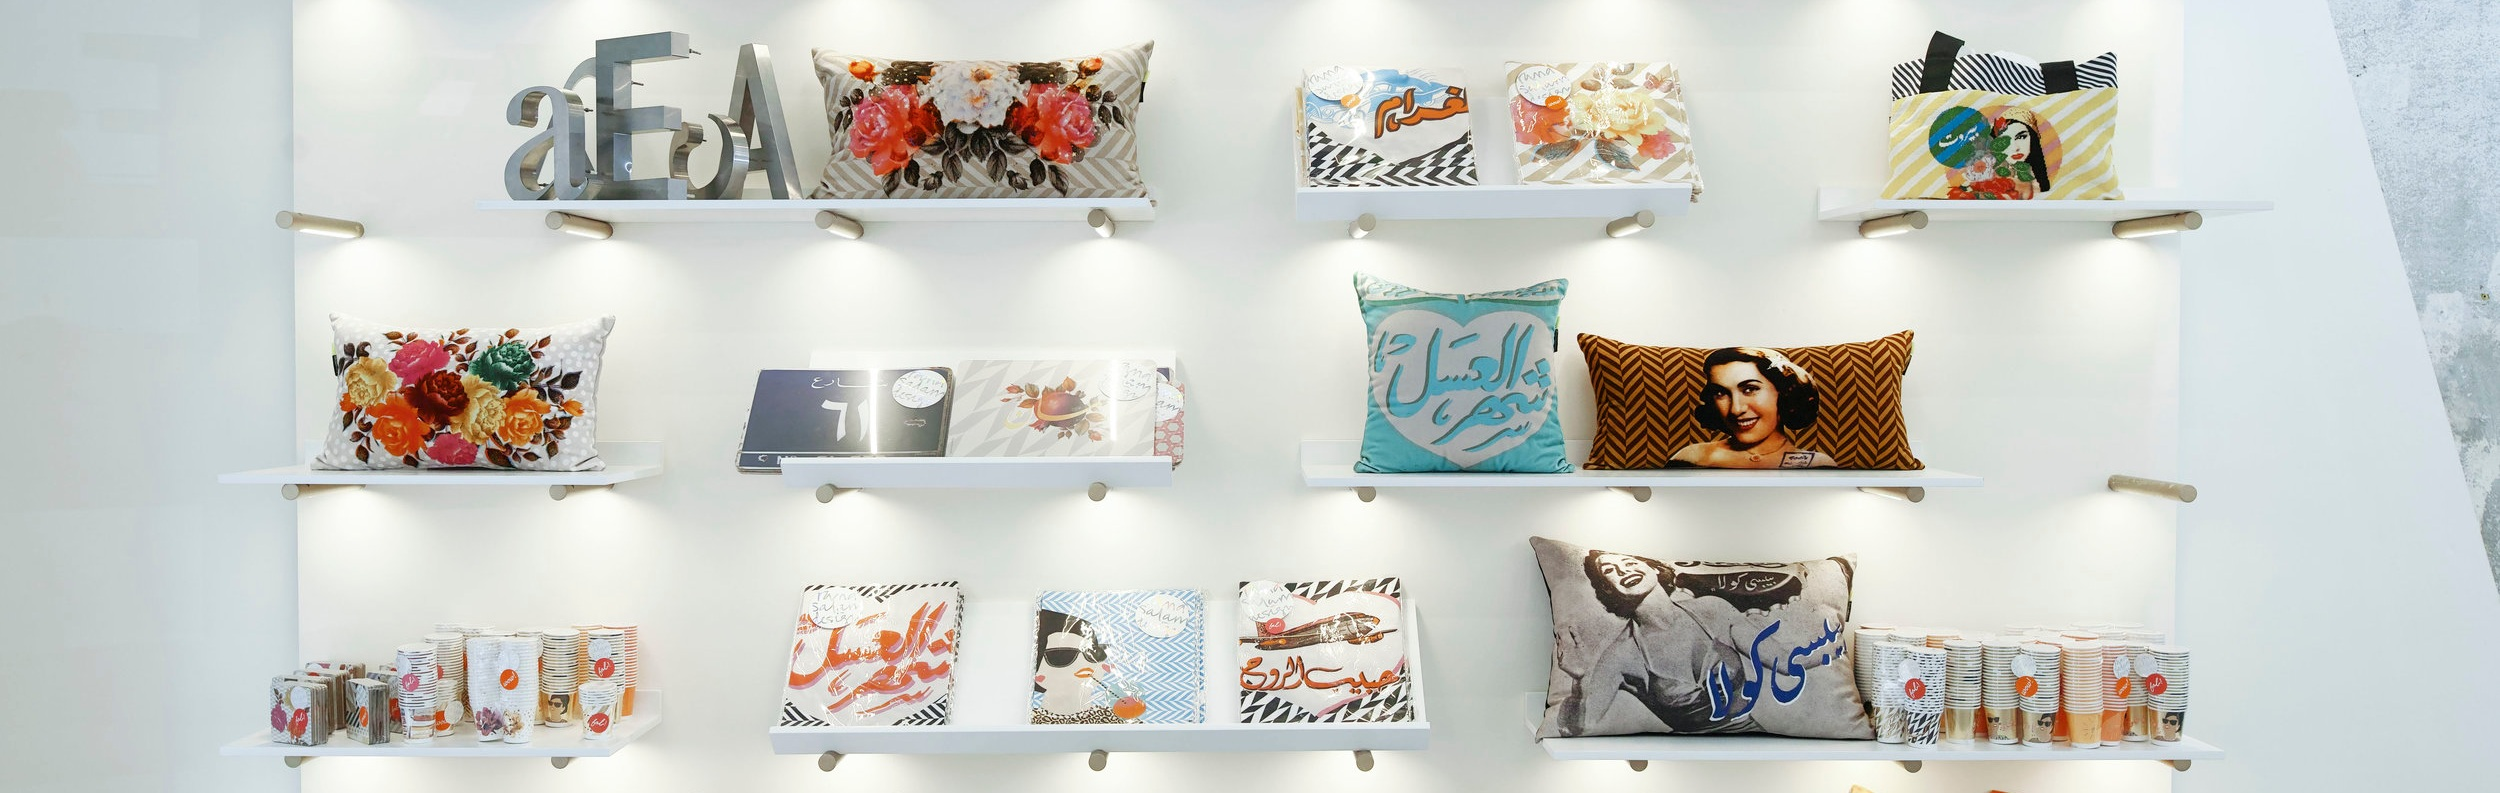 Rana Salam Studio_cushions on wall_Marco Menelli.jpg